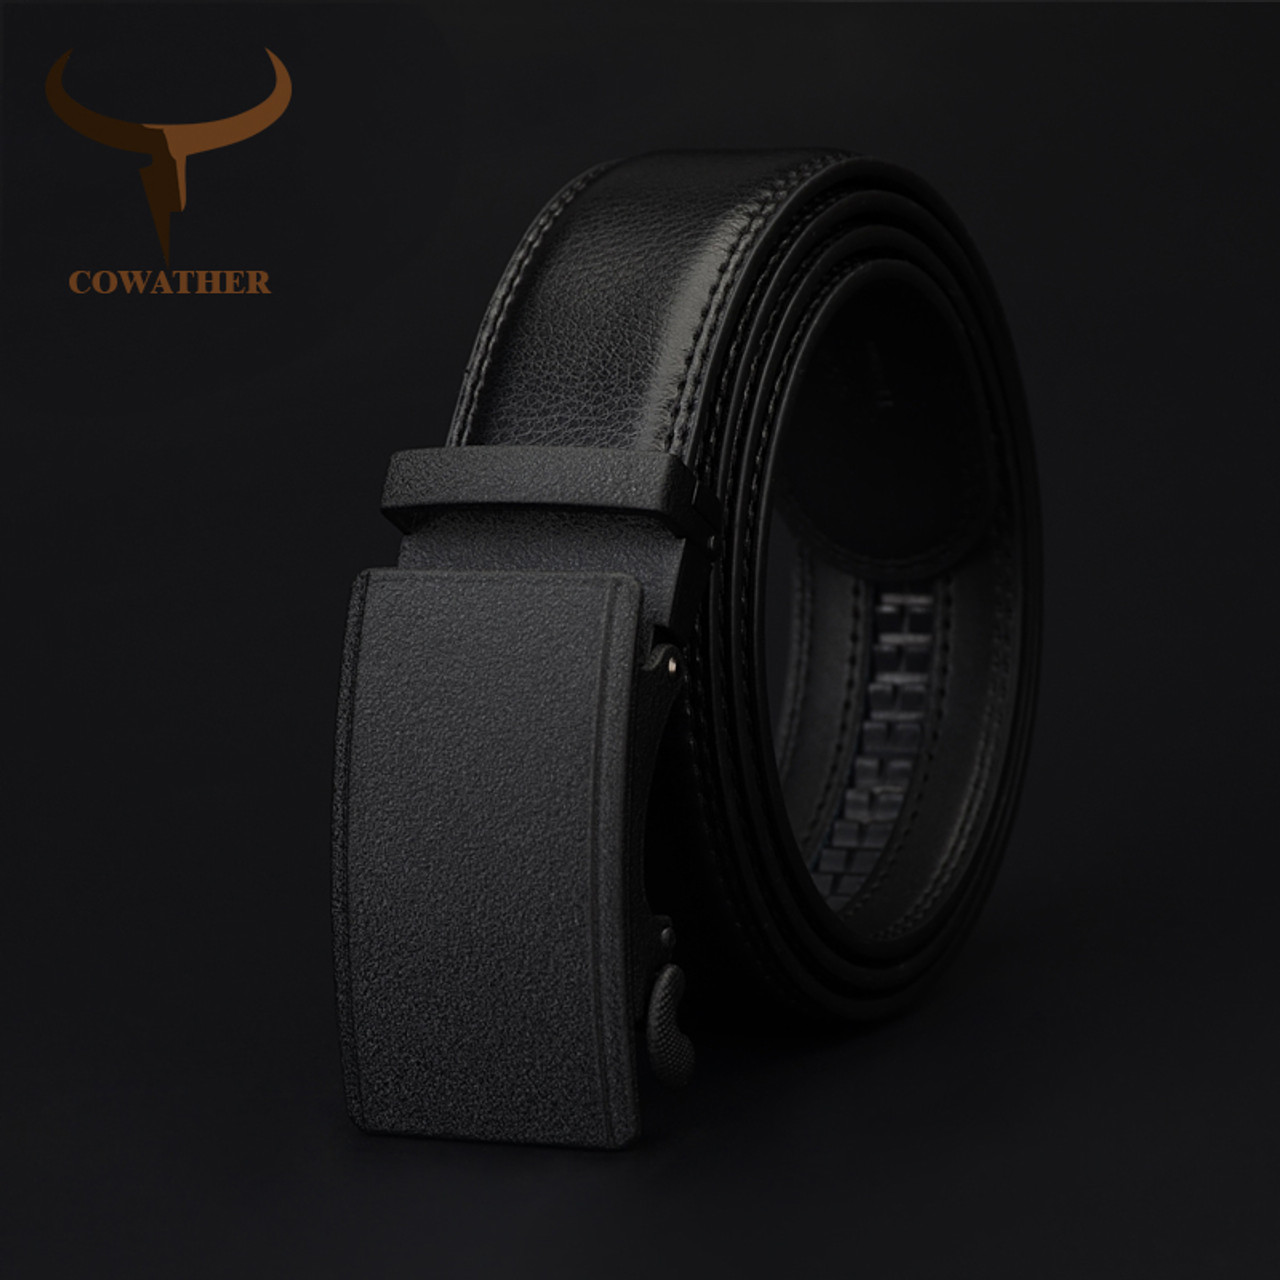 COW genuine Leather Belts for Men High Quality Brand Automatic Ratchet Buckle